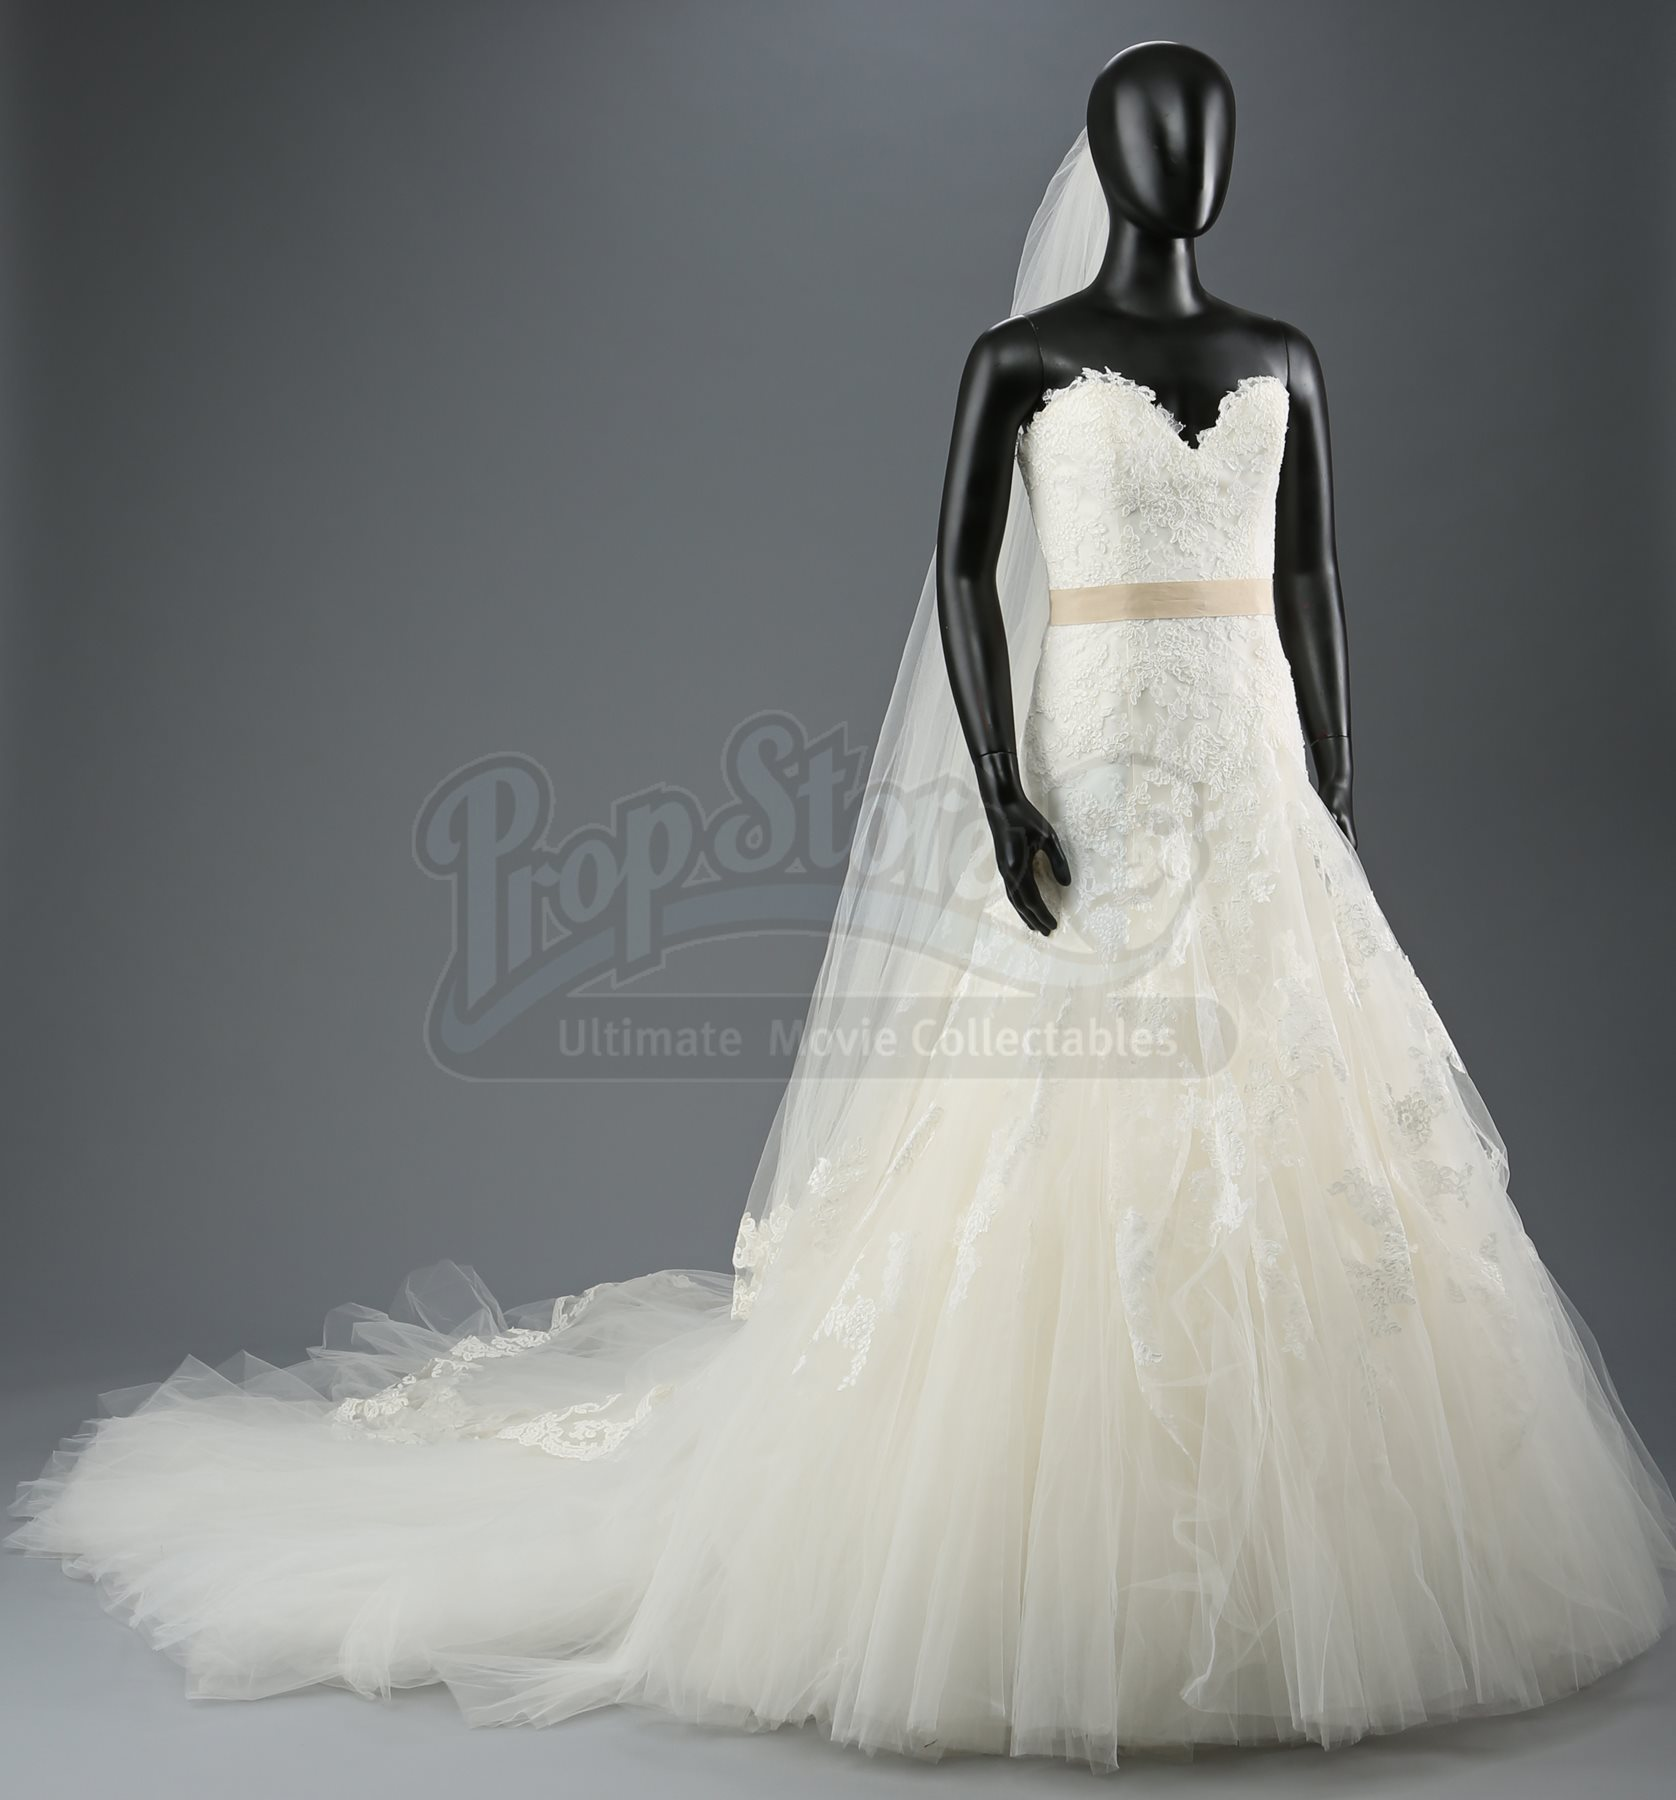 Bella swans nightmare wedding dress and veil current price 1400 prop store ultimate movie collectables london los angeles junglespirit Images